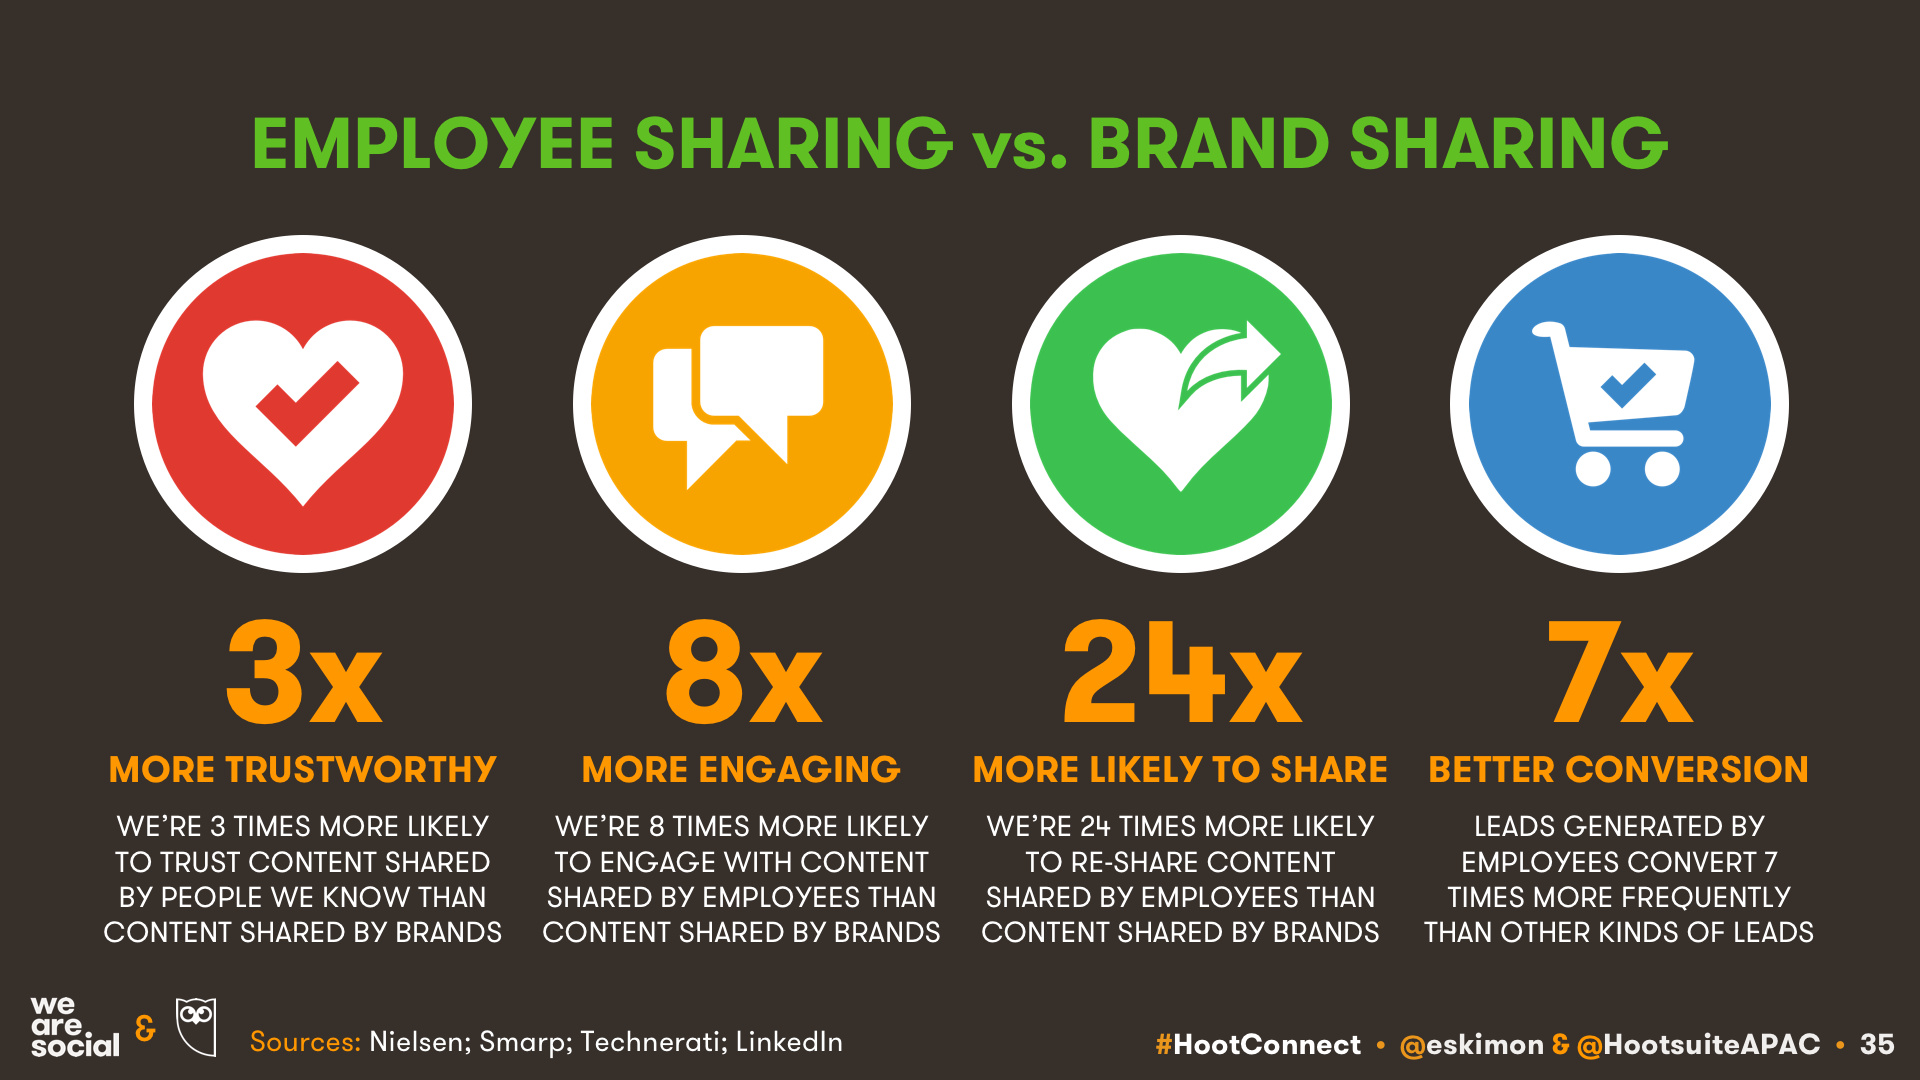 KEPIOS: EMPLOYEE ADVOCACY DELIVERS BETTER SOCIAL SELLING SUCCESS